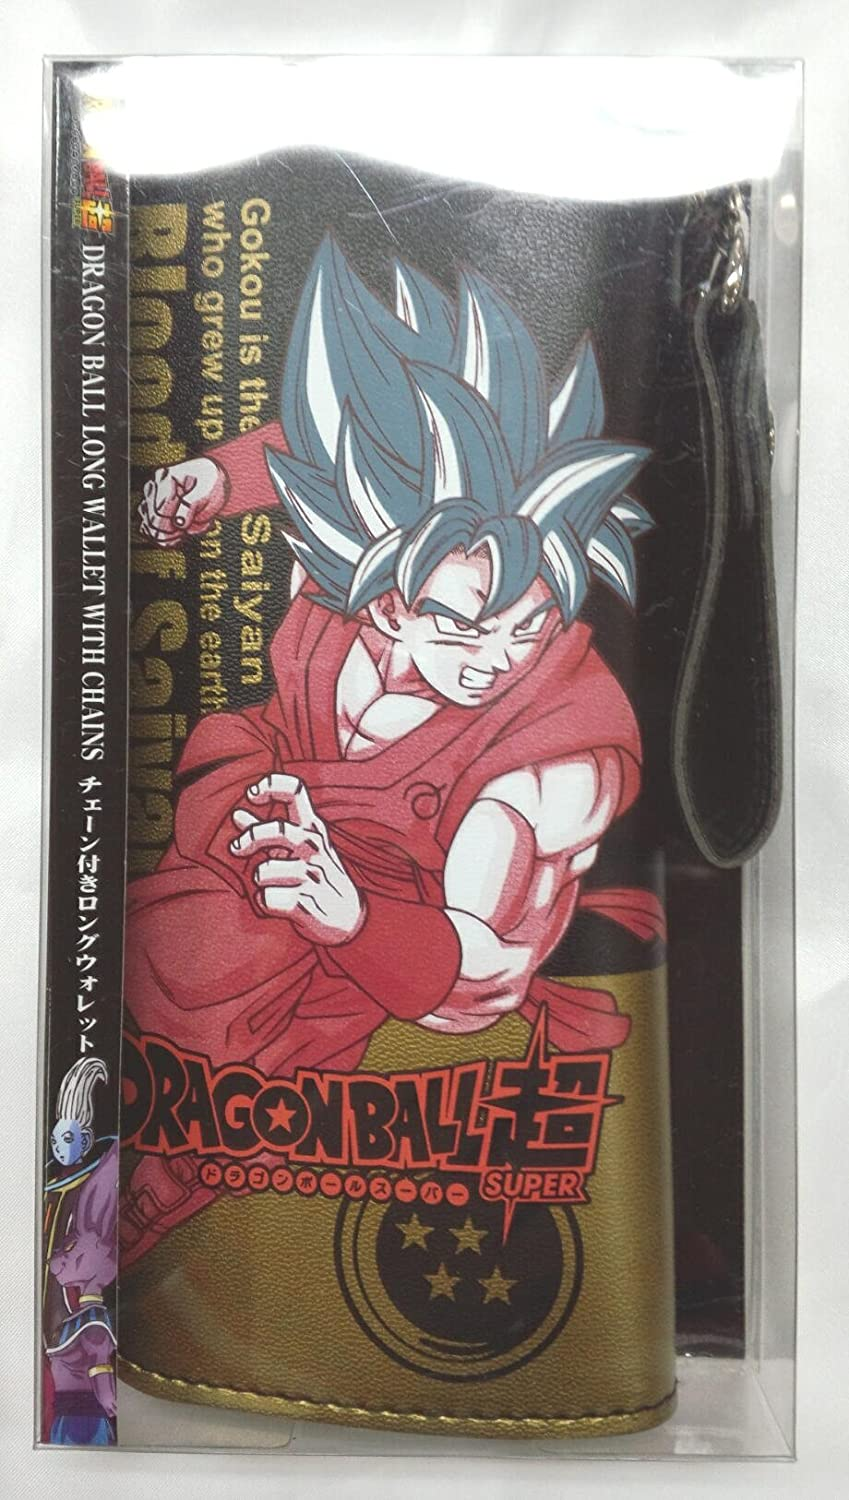 Dragon Ball cadena de súper larga billetera con cartera a largo Super Saiyan Goku Dios: Amazon.es: Juguetes y juegos